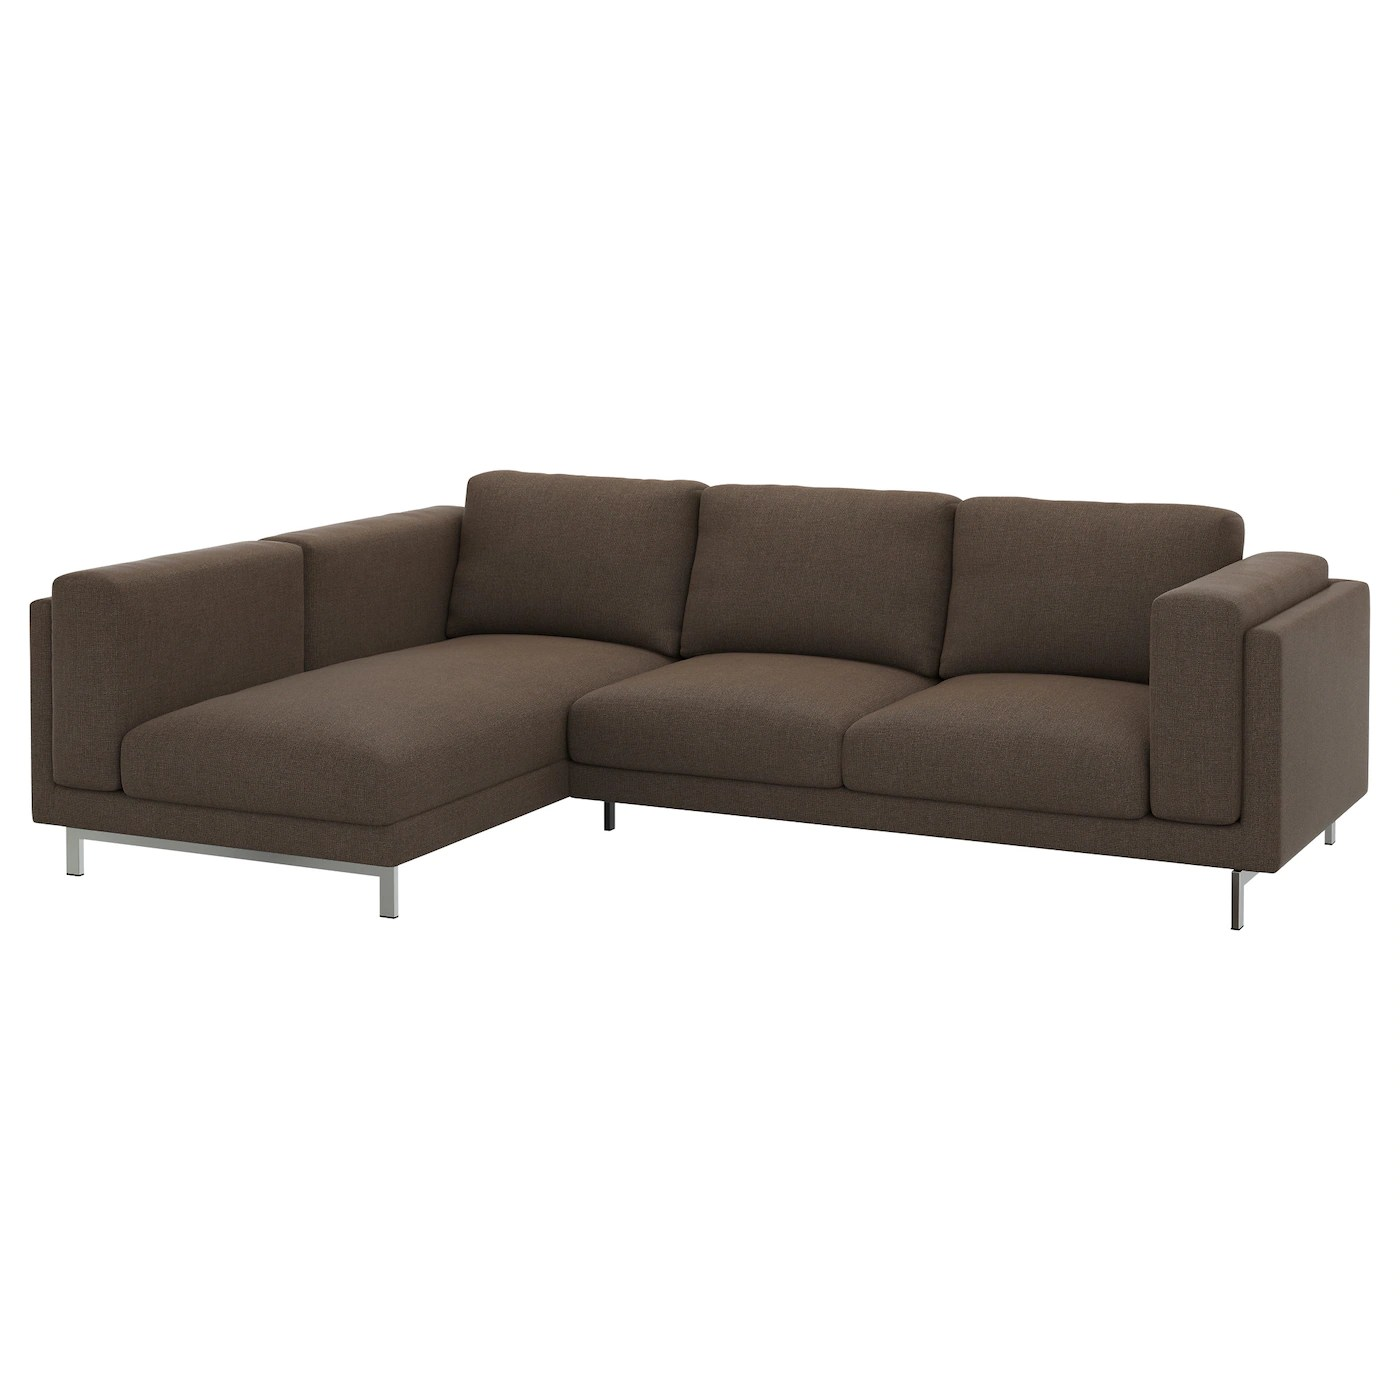 Ikea Sofa Nockeby Test Nockeby Two Seat Sofa W Chaise Longue Left Tenö Brown